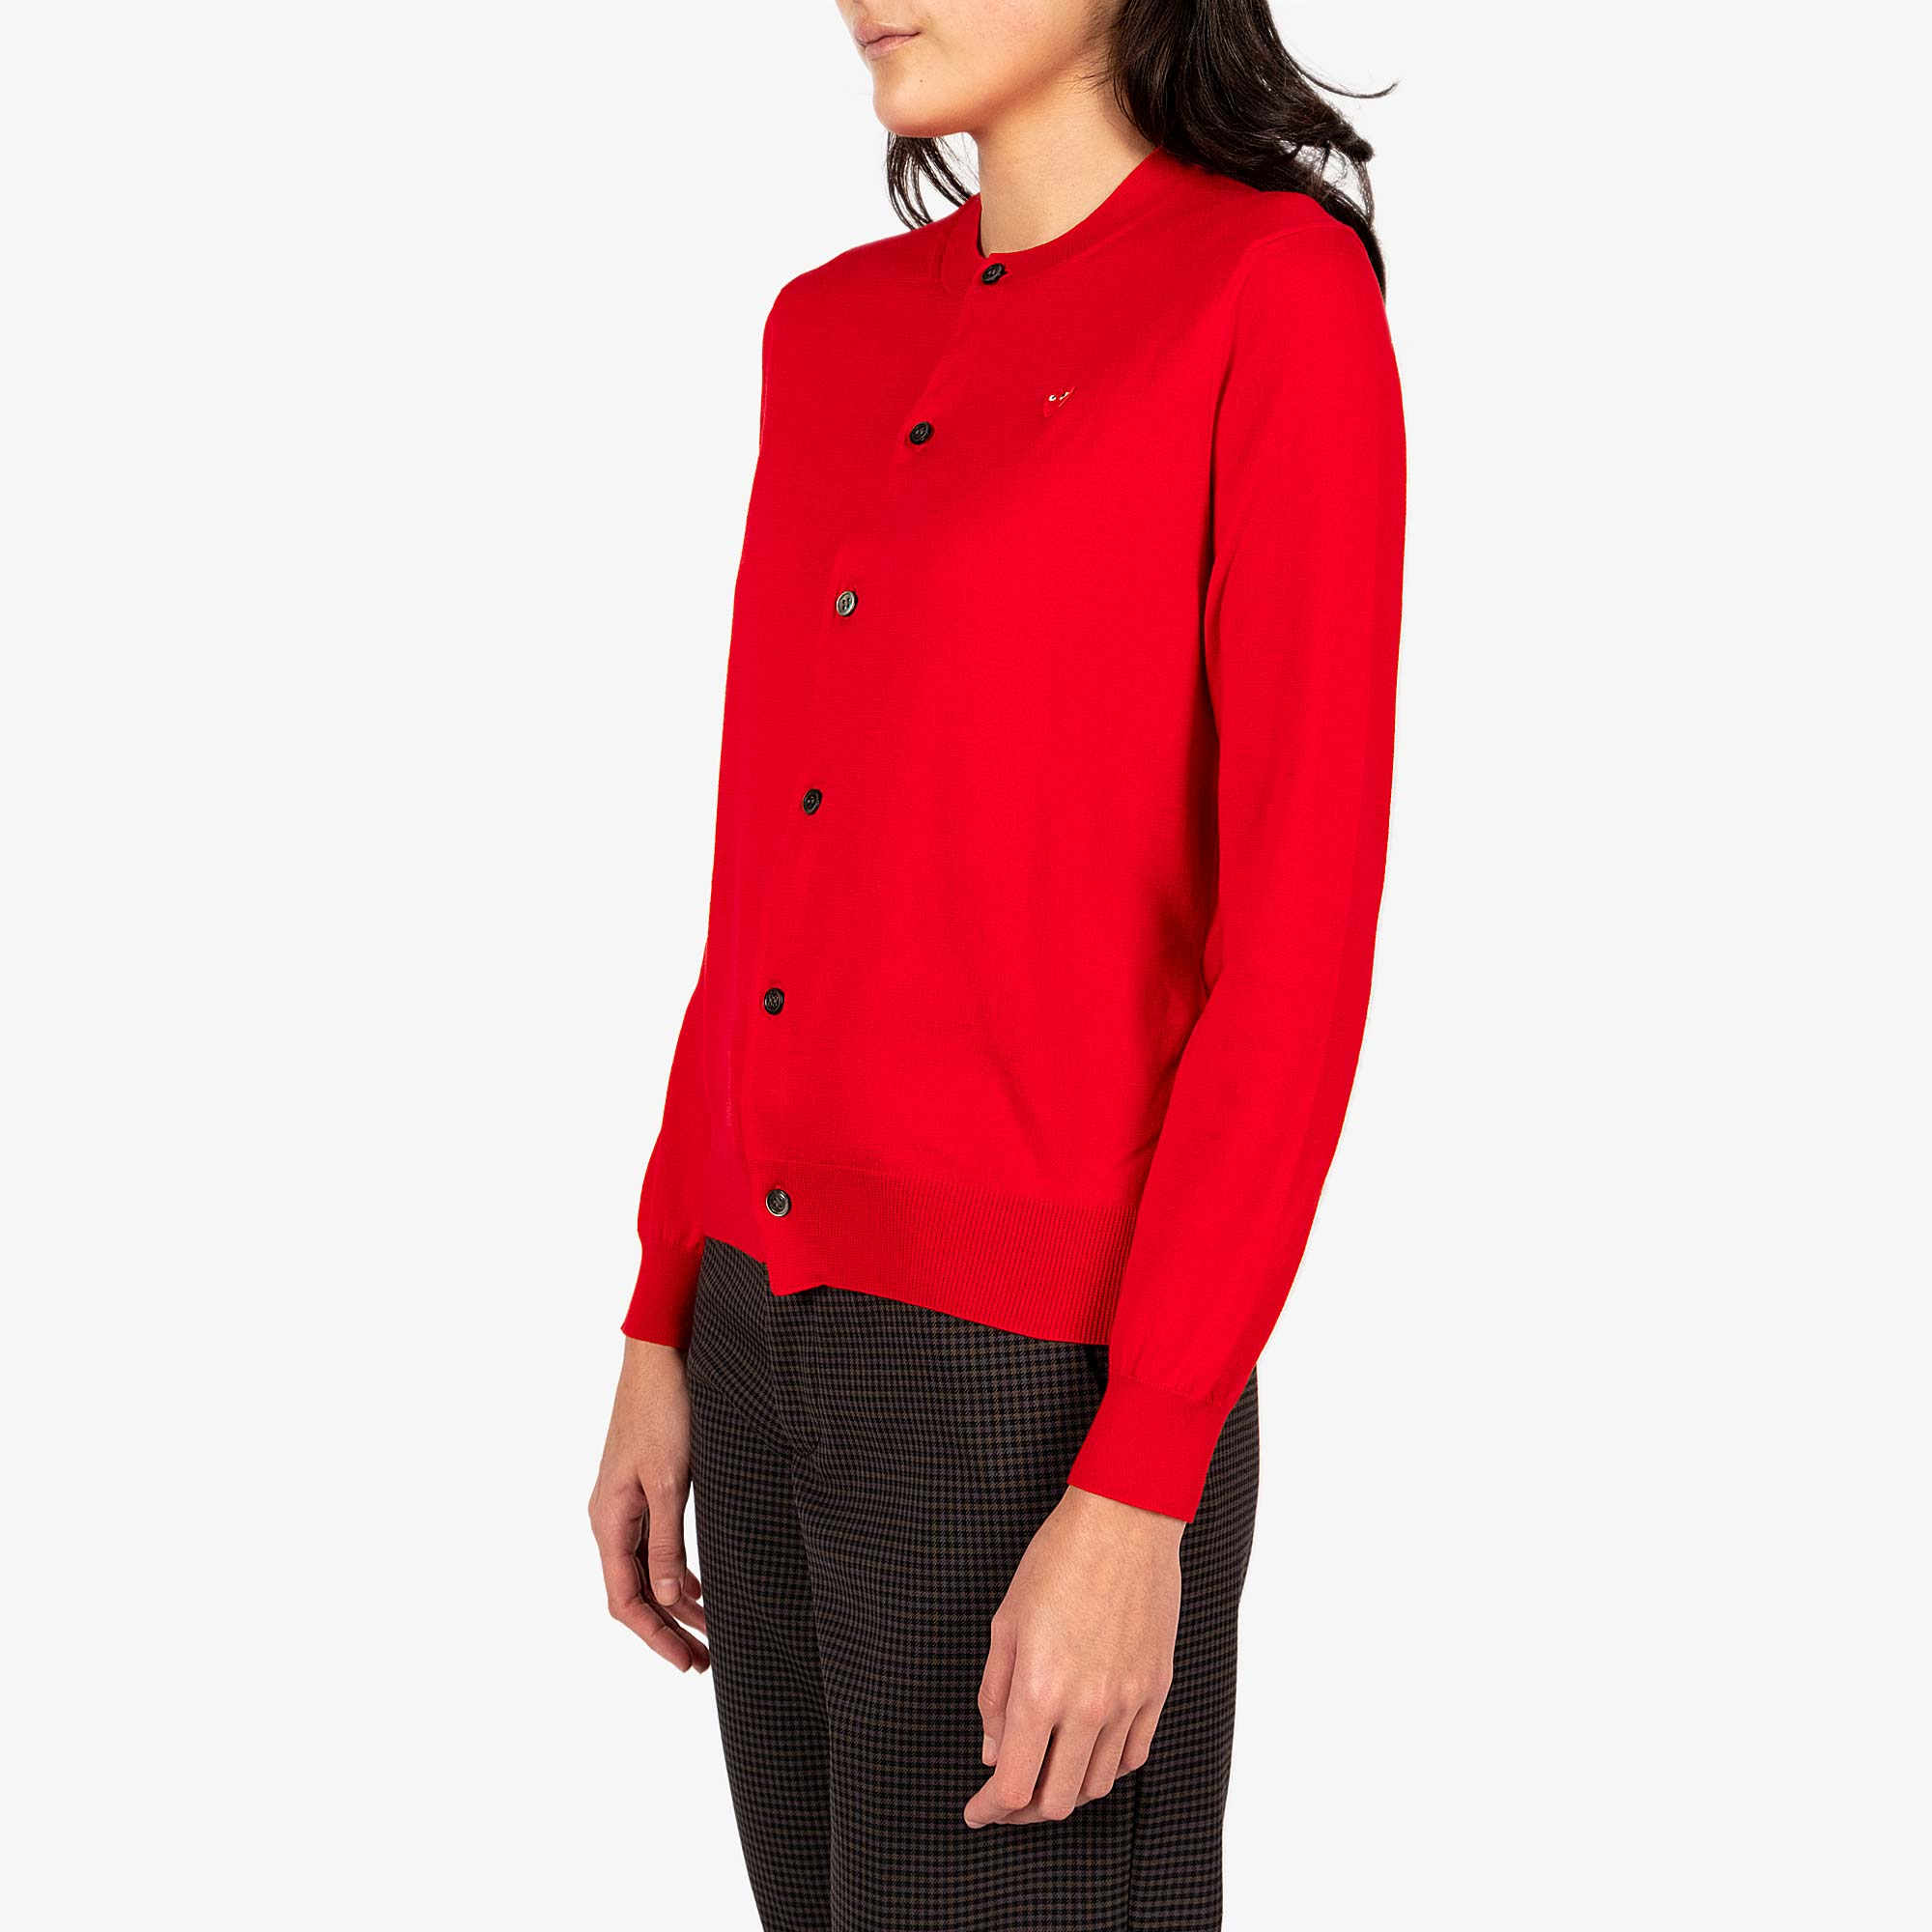 Comme des Garçons - PLAY Small Red Emblem  Womens Cardigan - Red 4